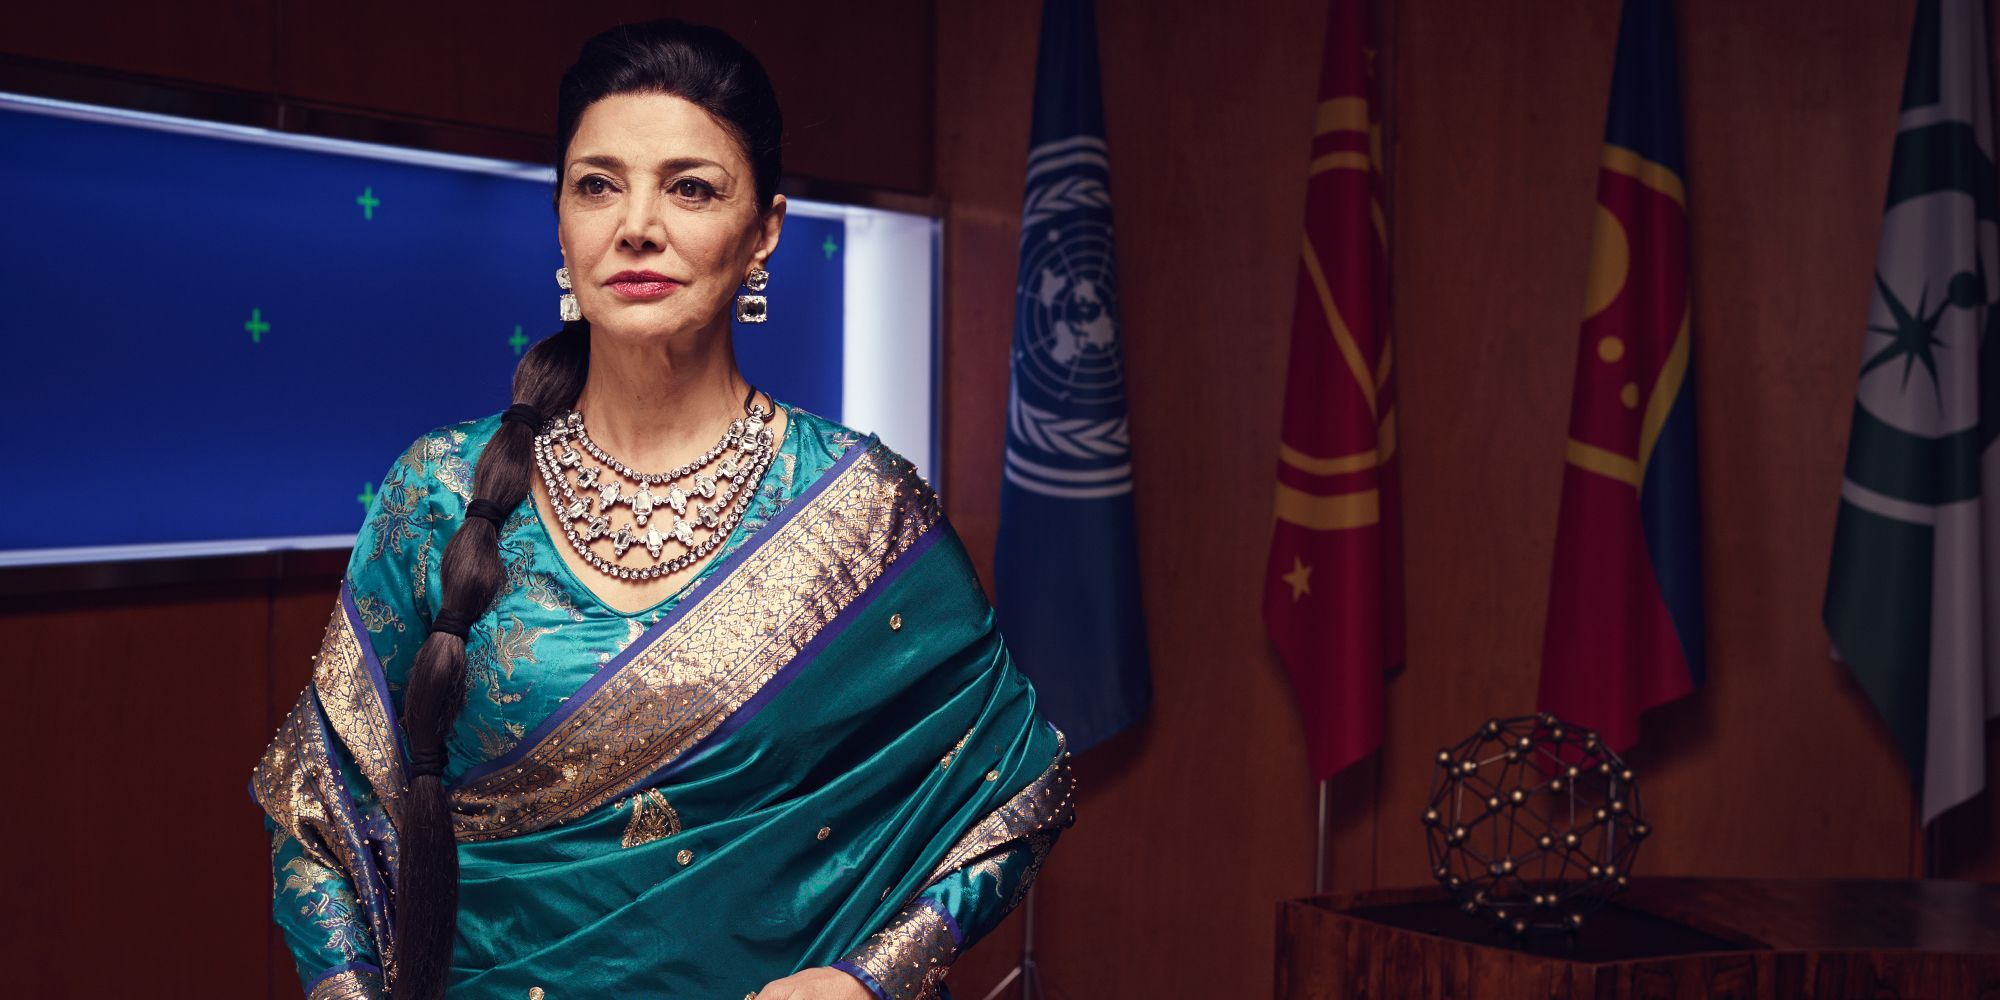 Mass Effect And The Expanse Actor Shohreh Aghdashloo On Her Roles And The Importance Of Diversity